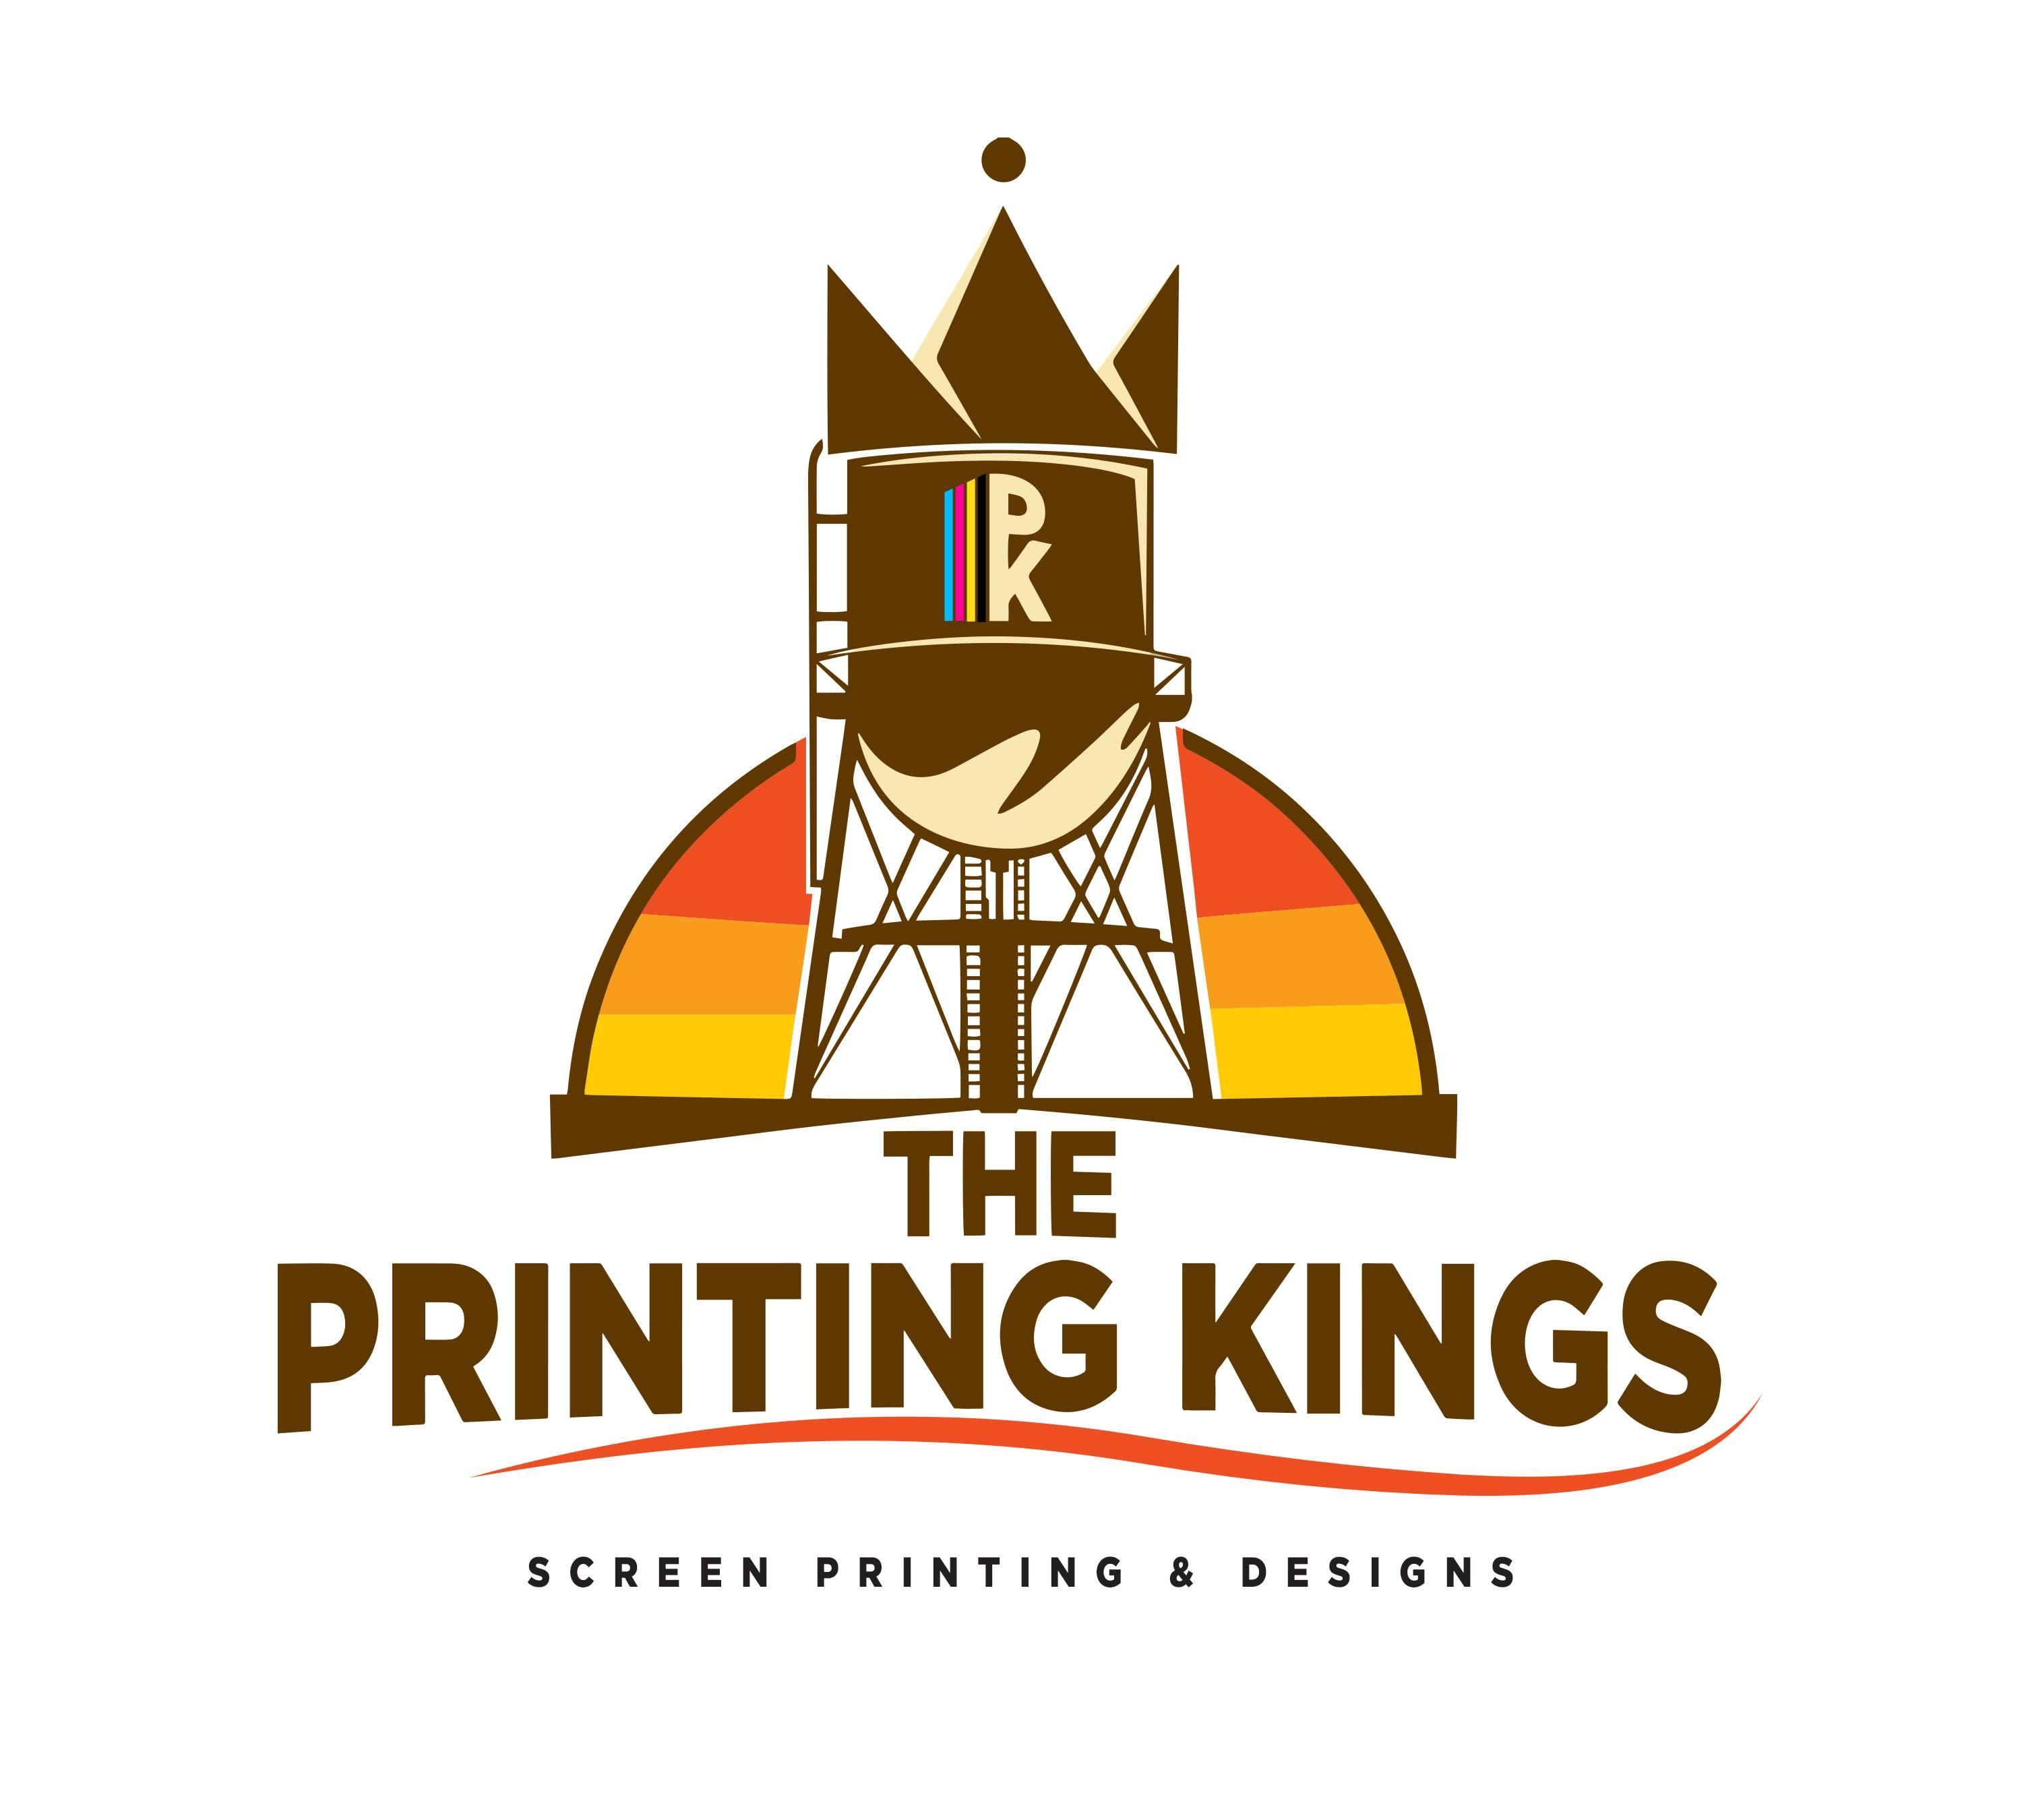 The Printing Kings logo